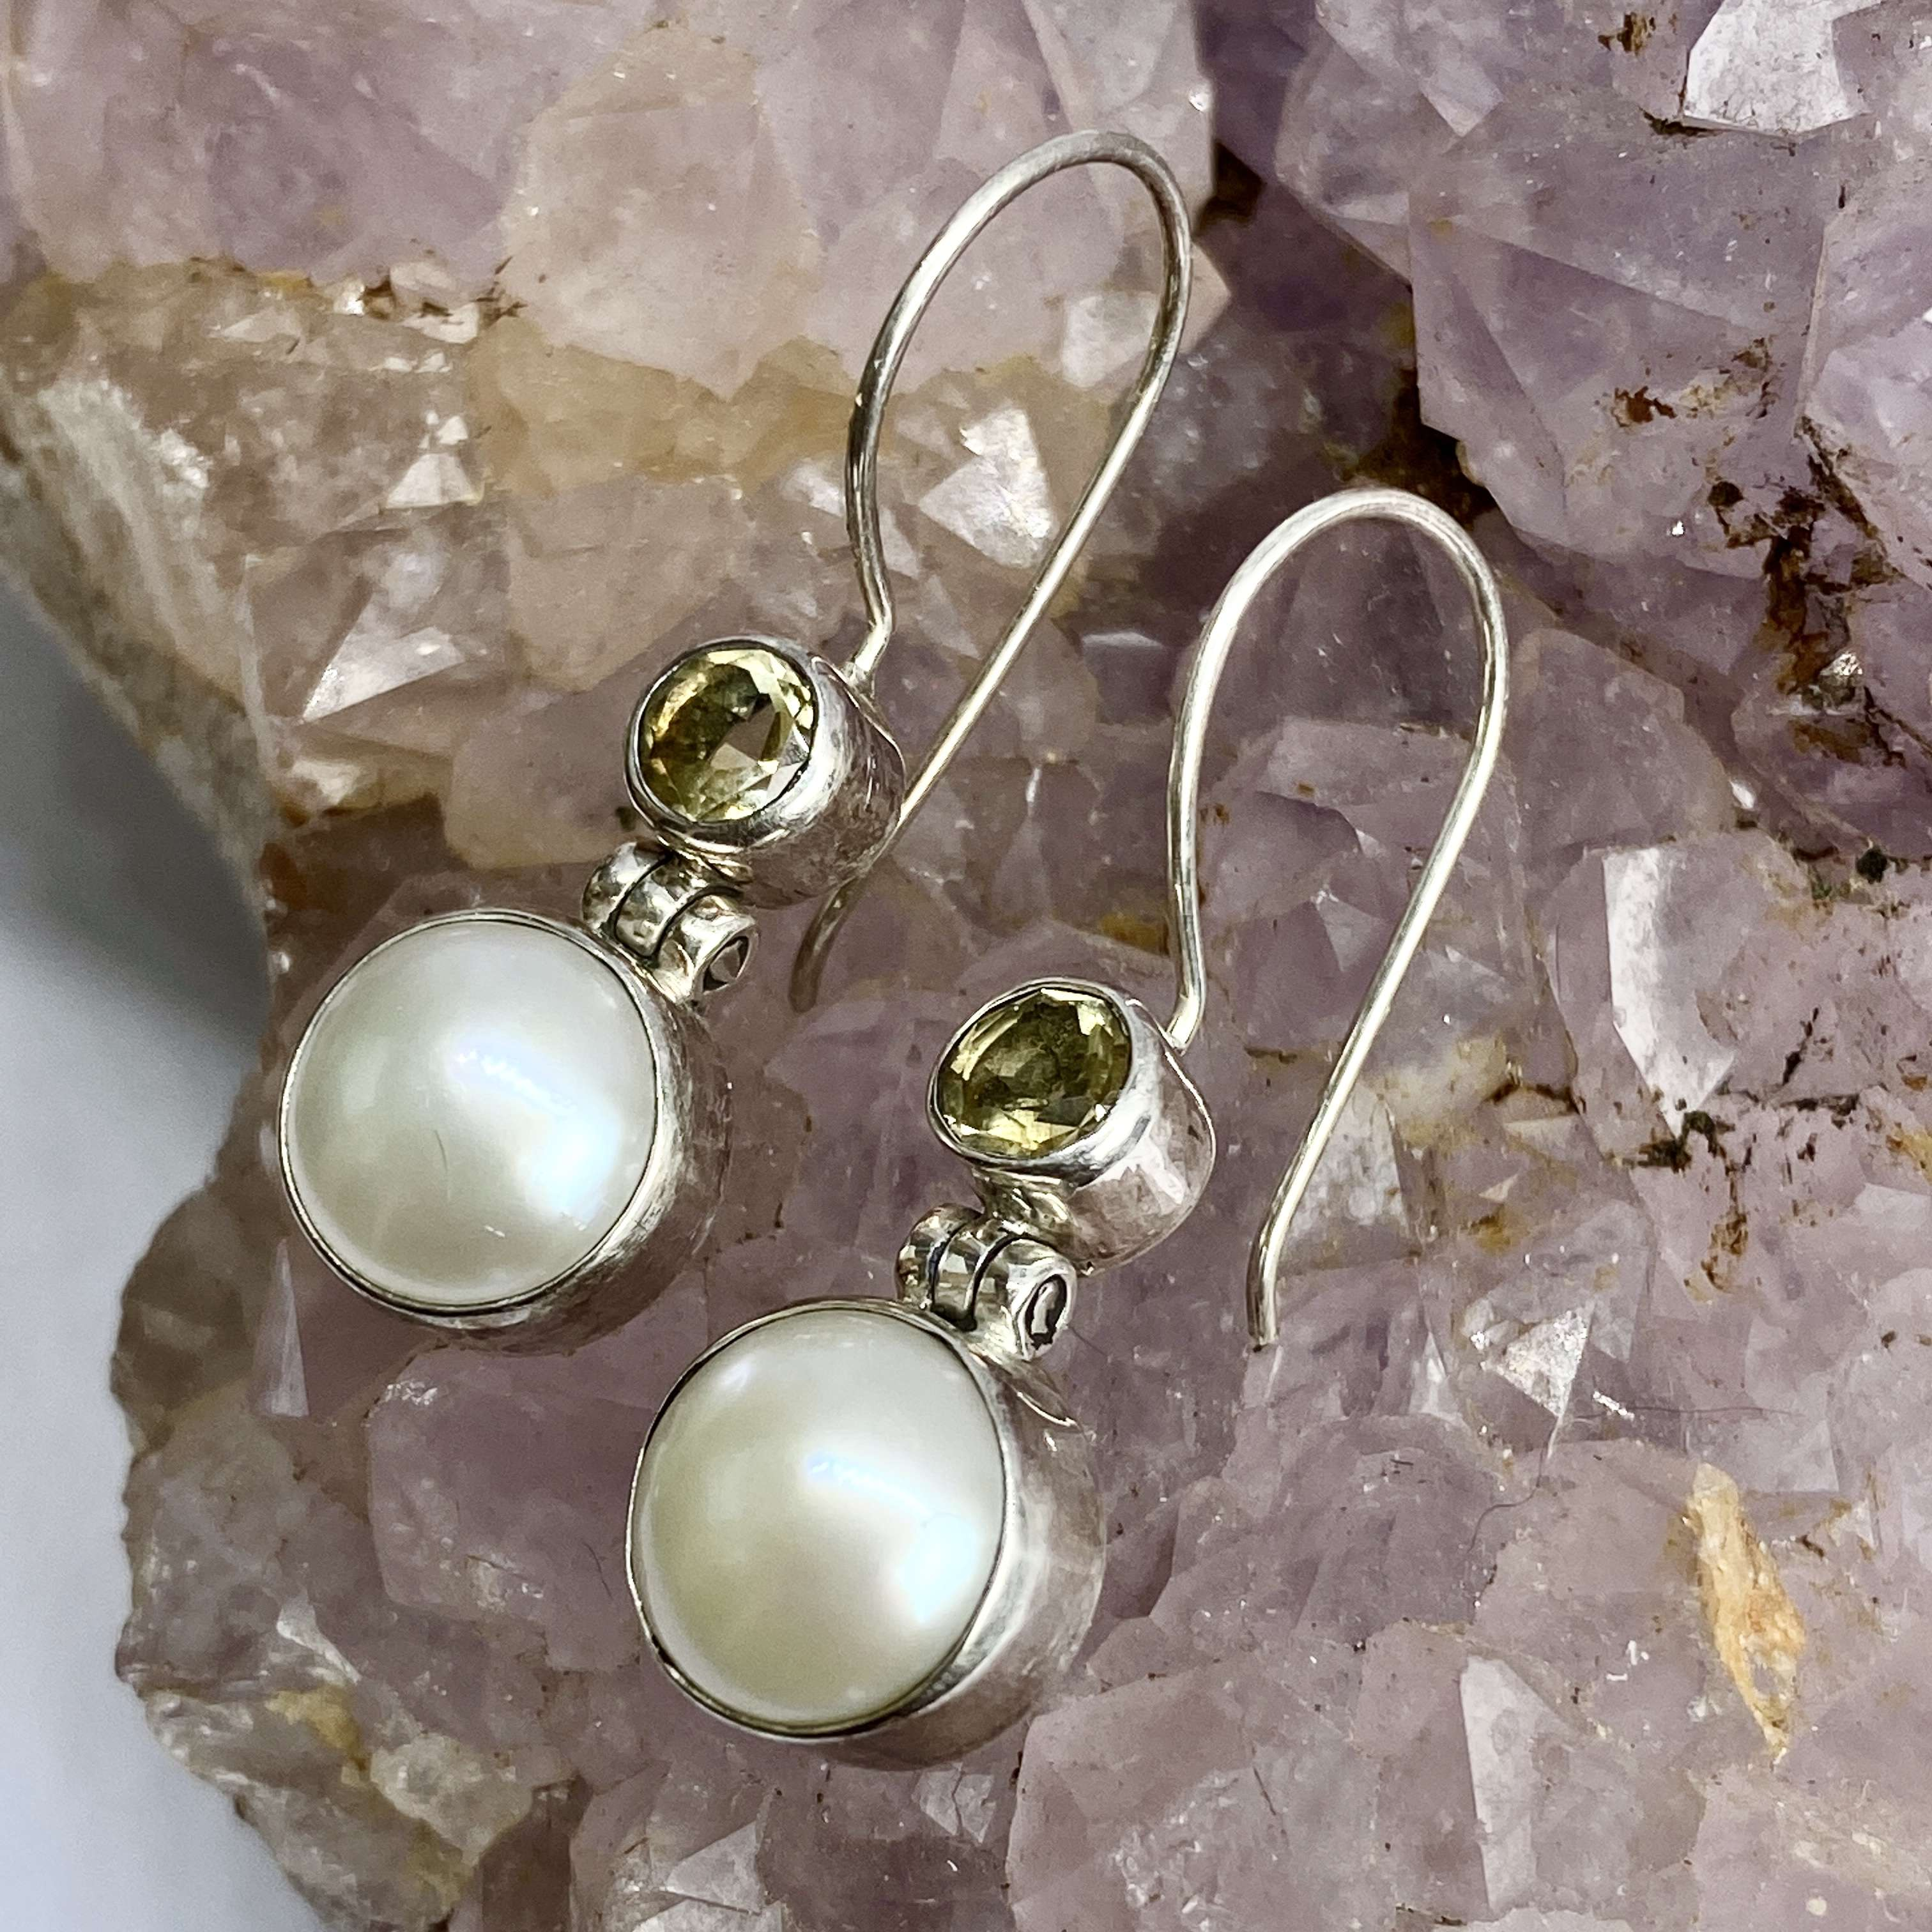 (925 BALI STERLING SILVER EARRINGS WITH PEARL - CITRINE)